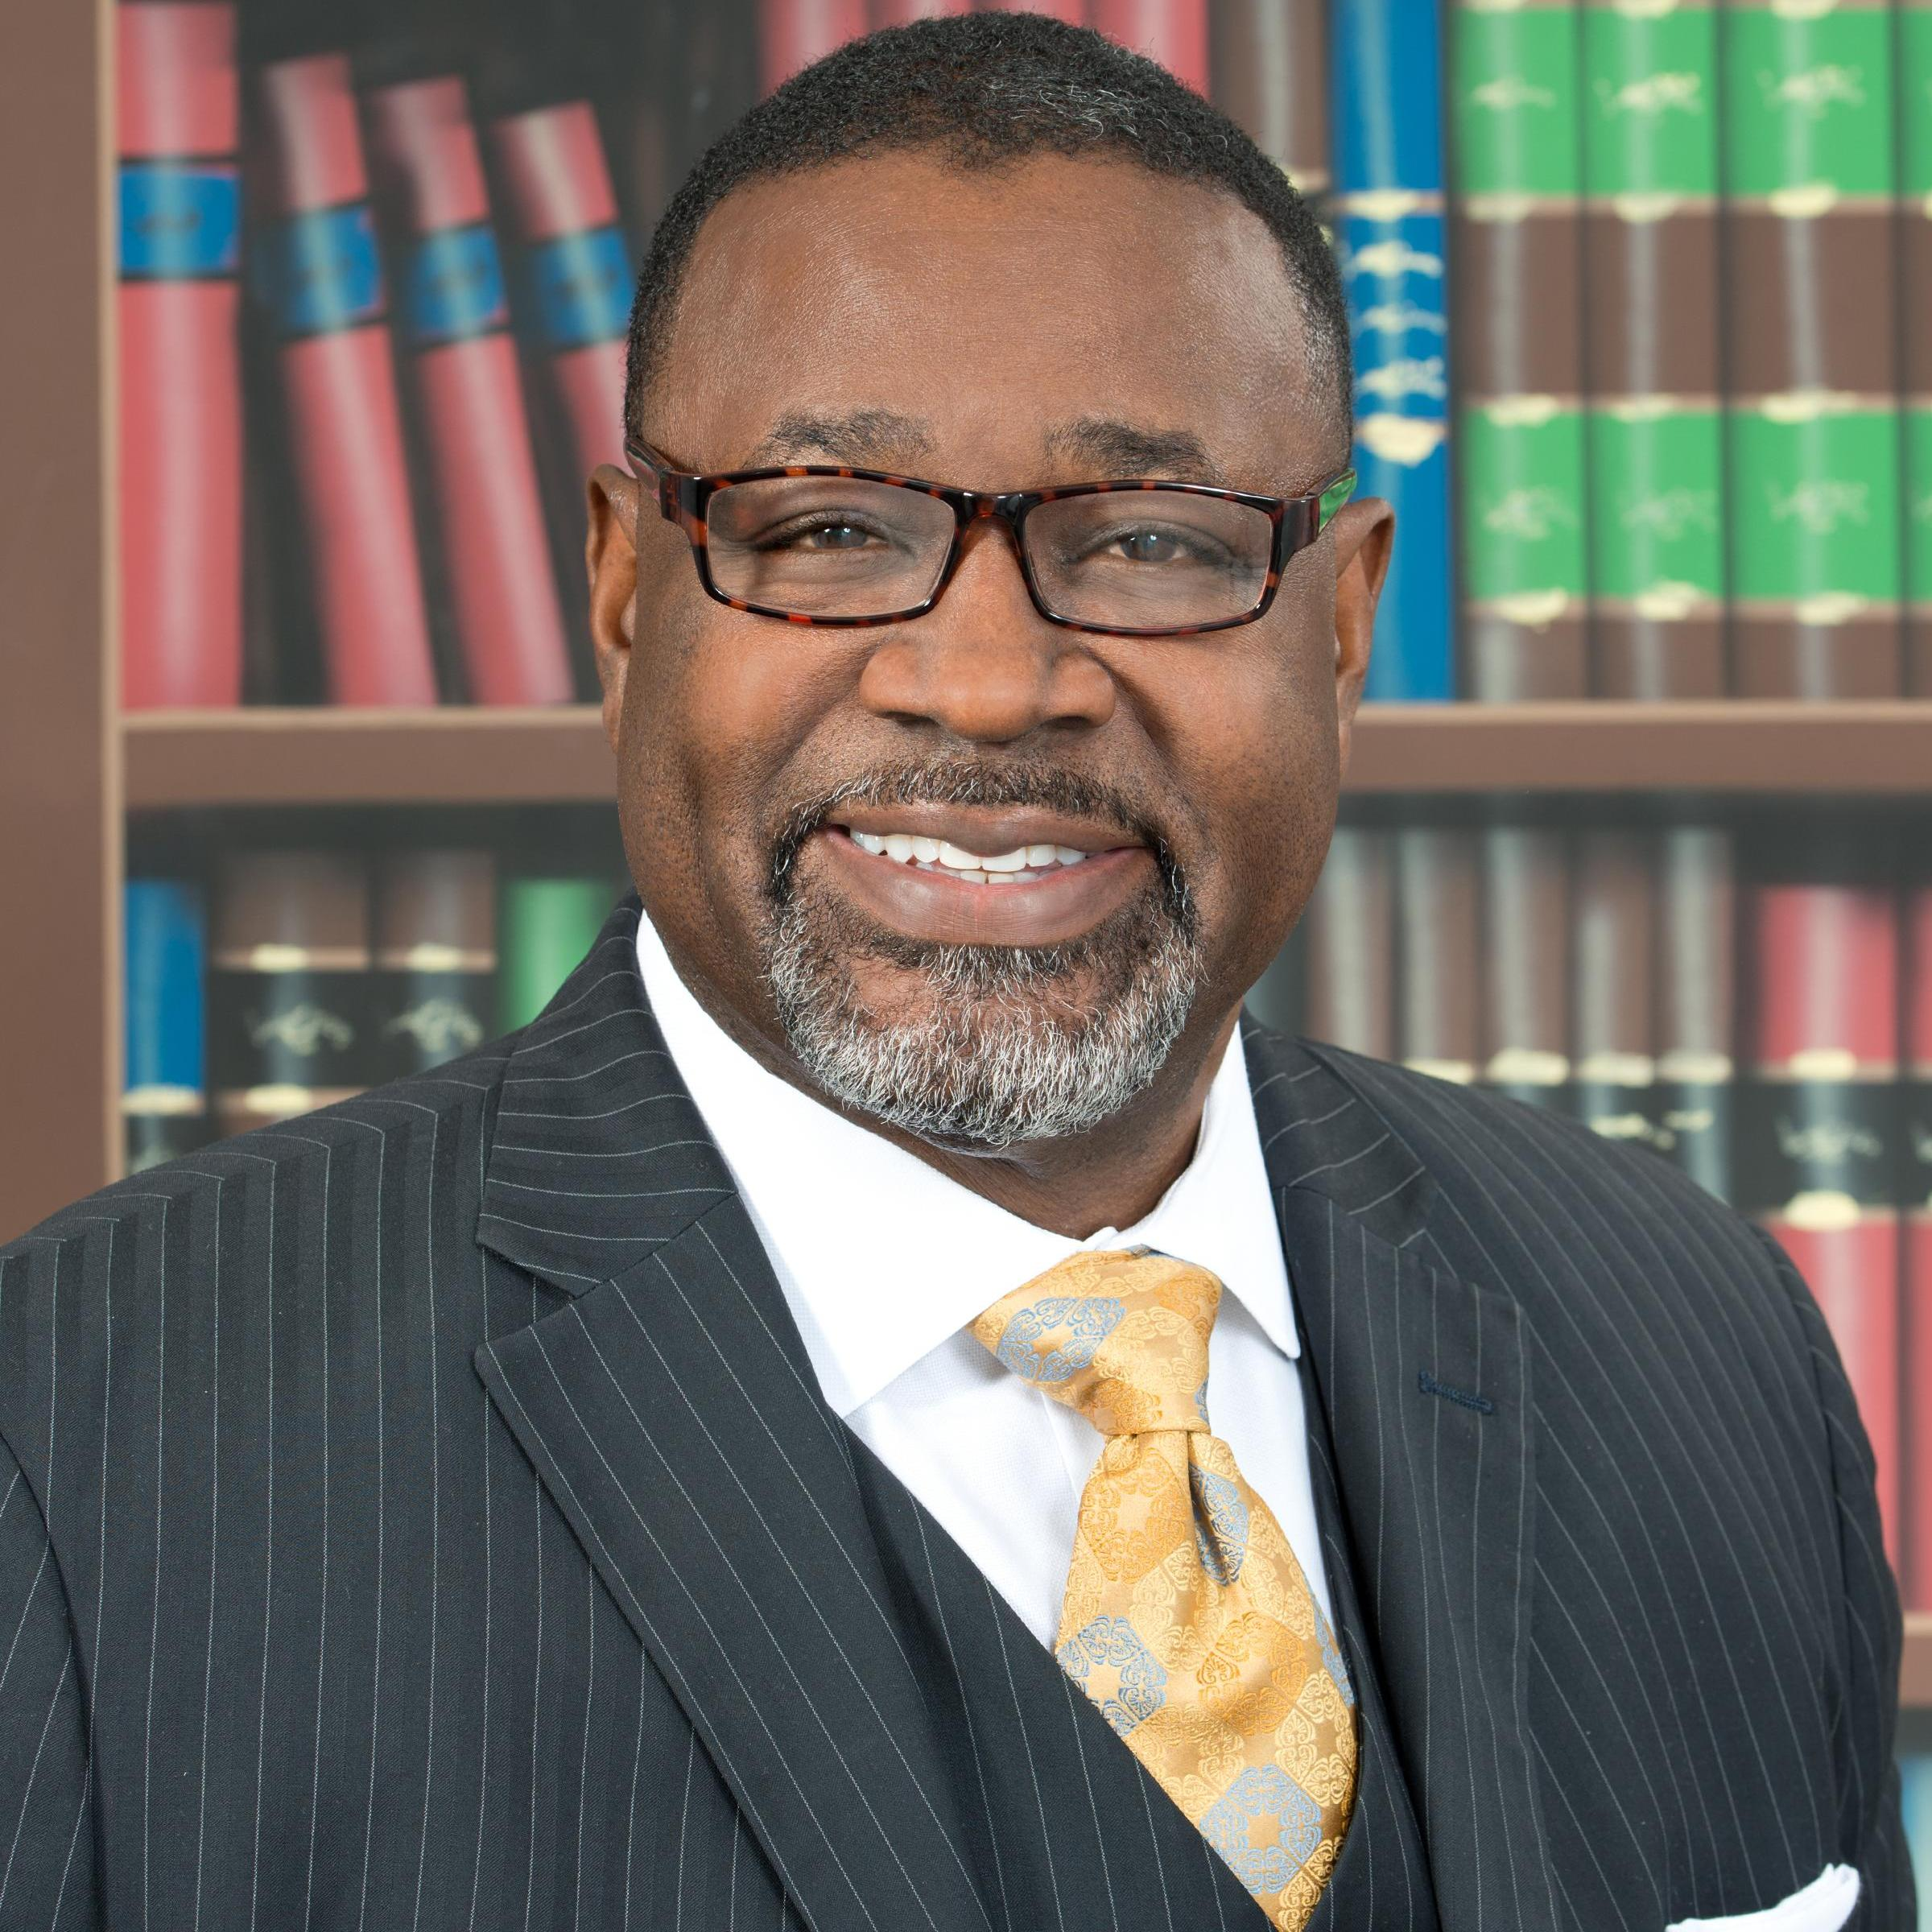 Rev. Donald Ray Frank`s profile picture